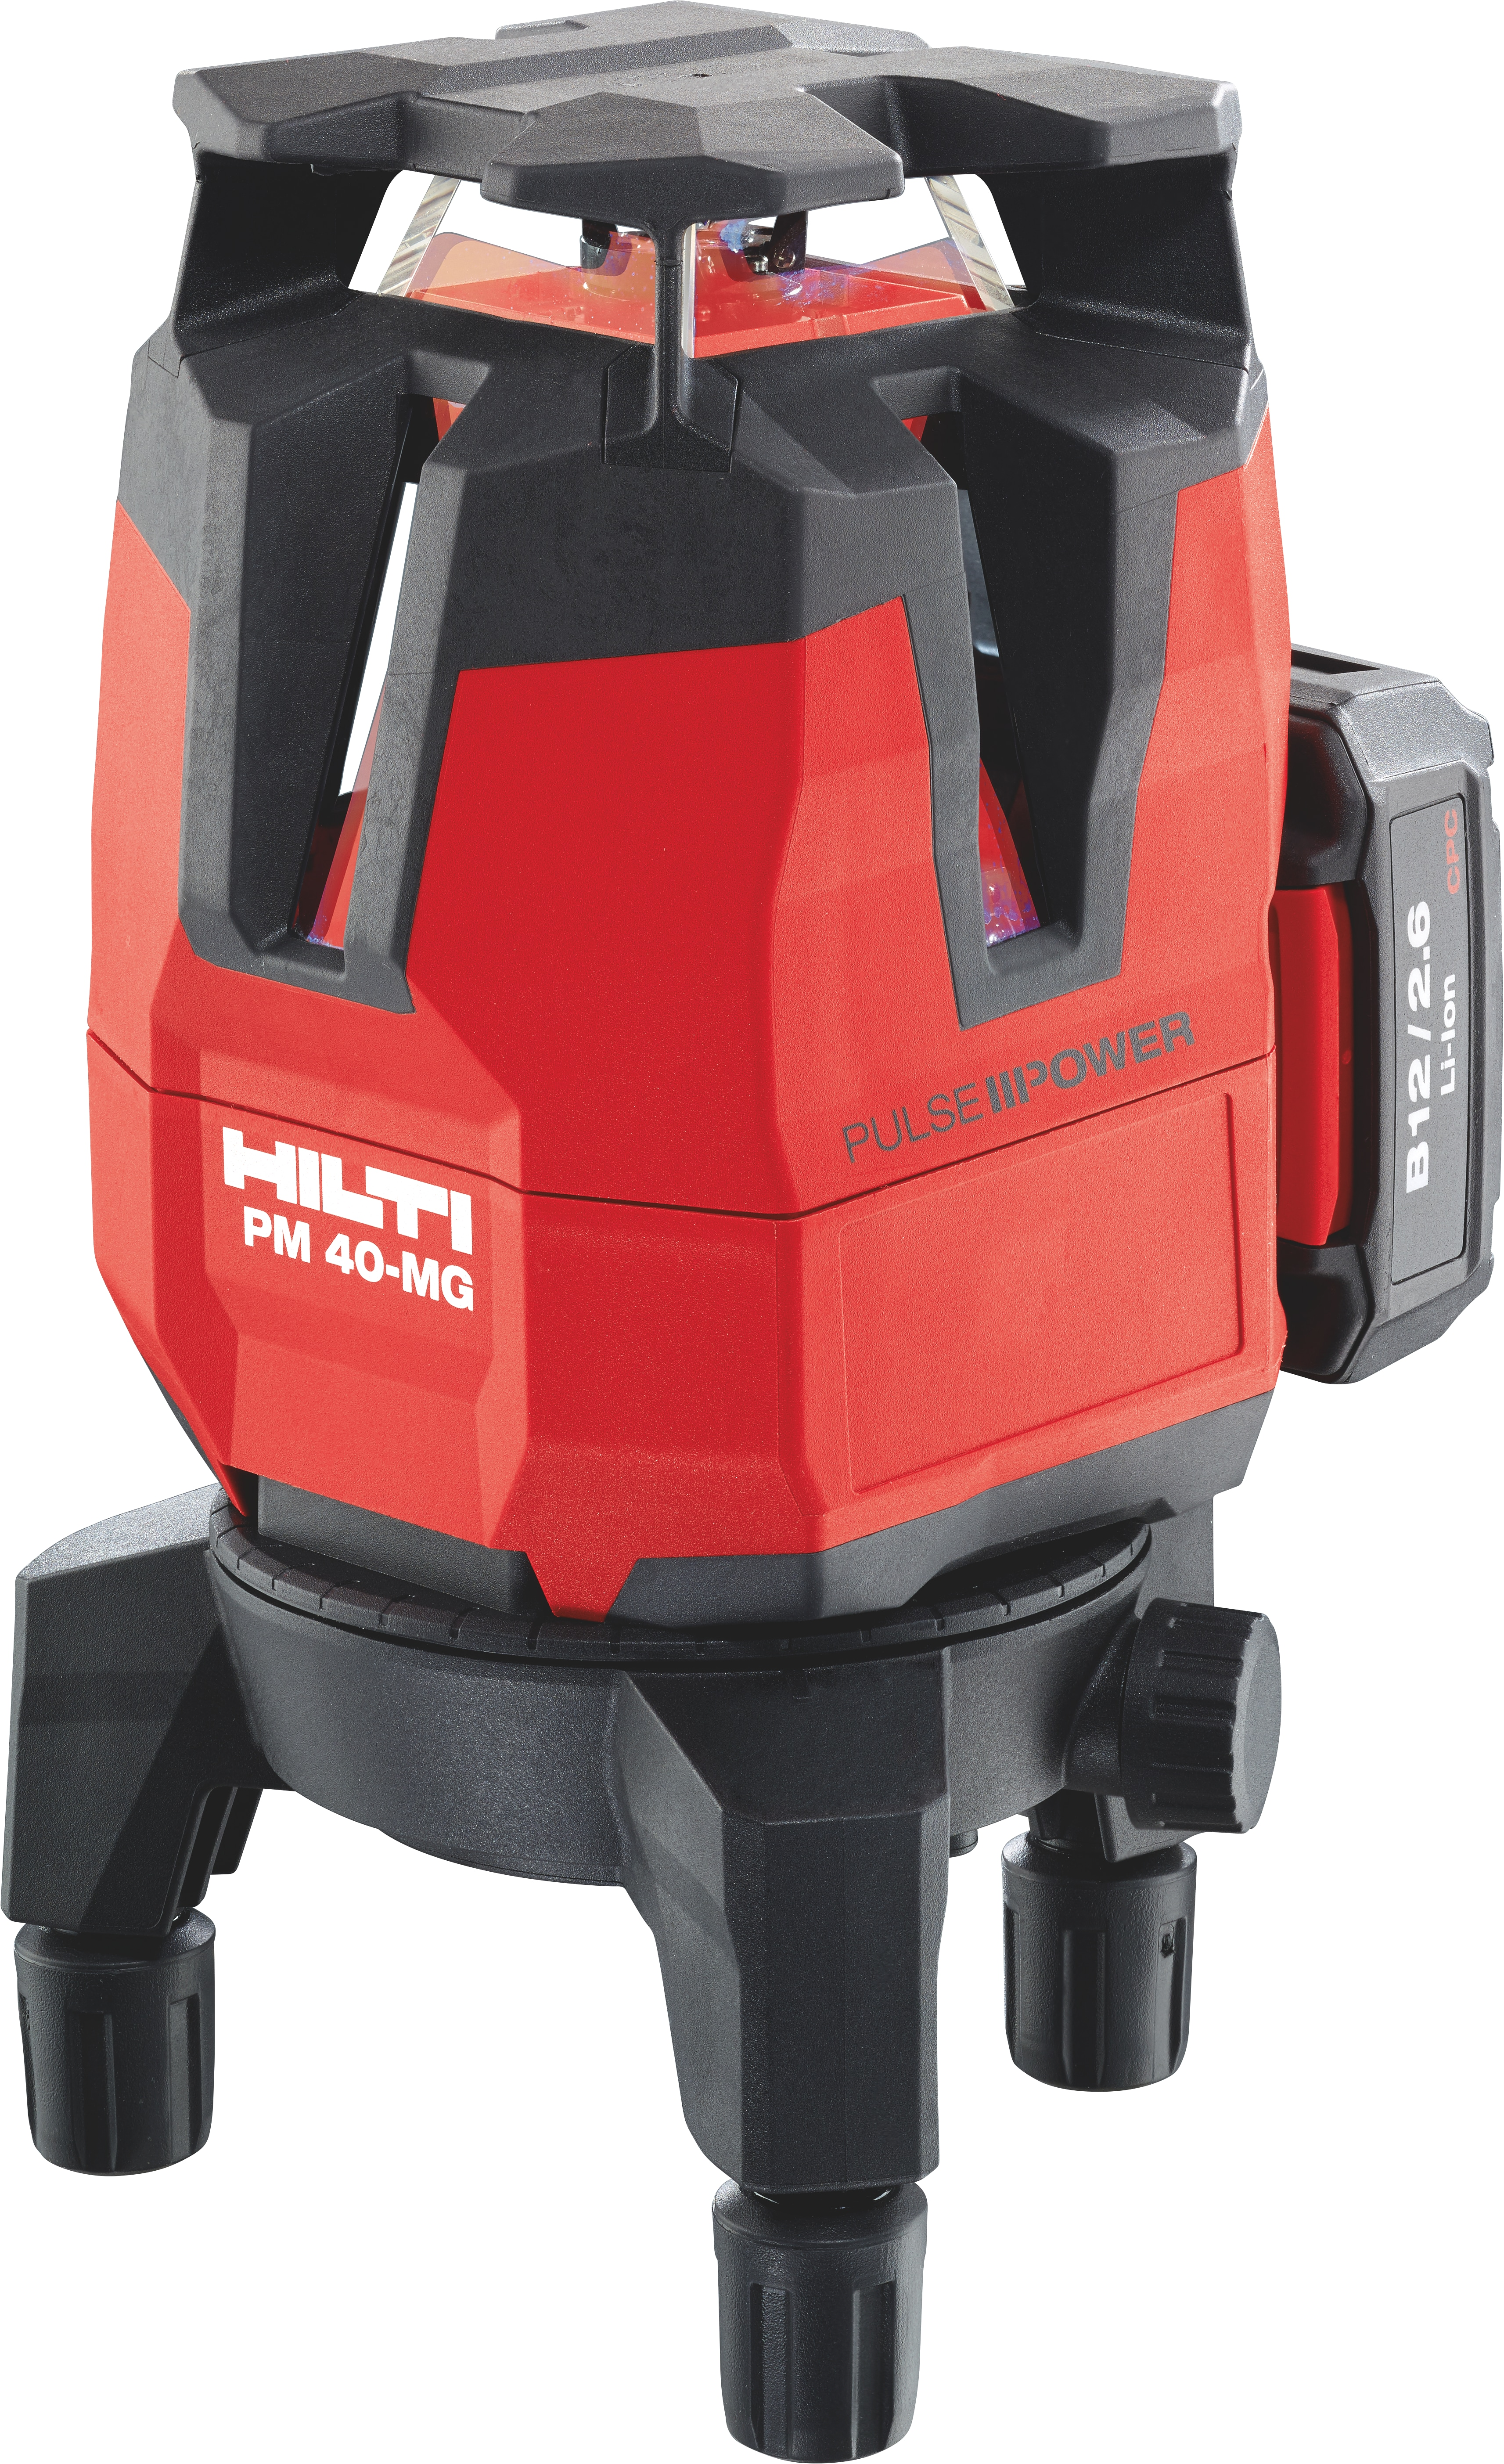 Hilti PM 40-MG multi-line laser